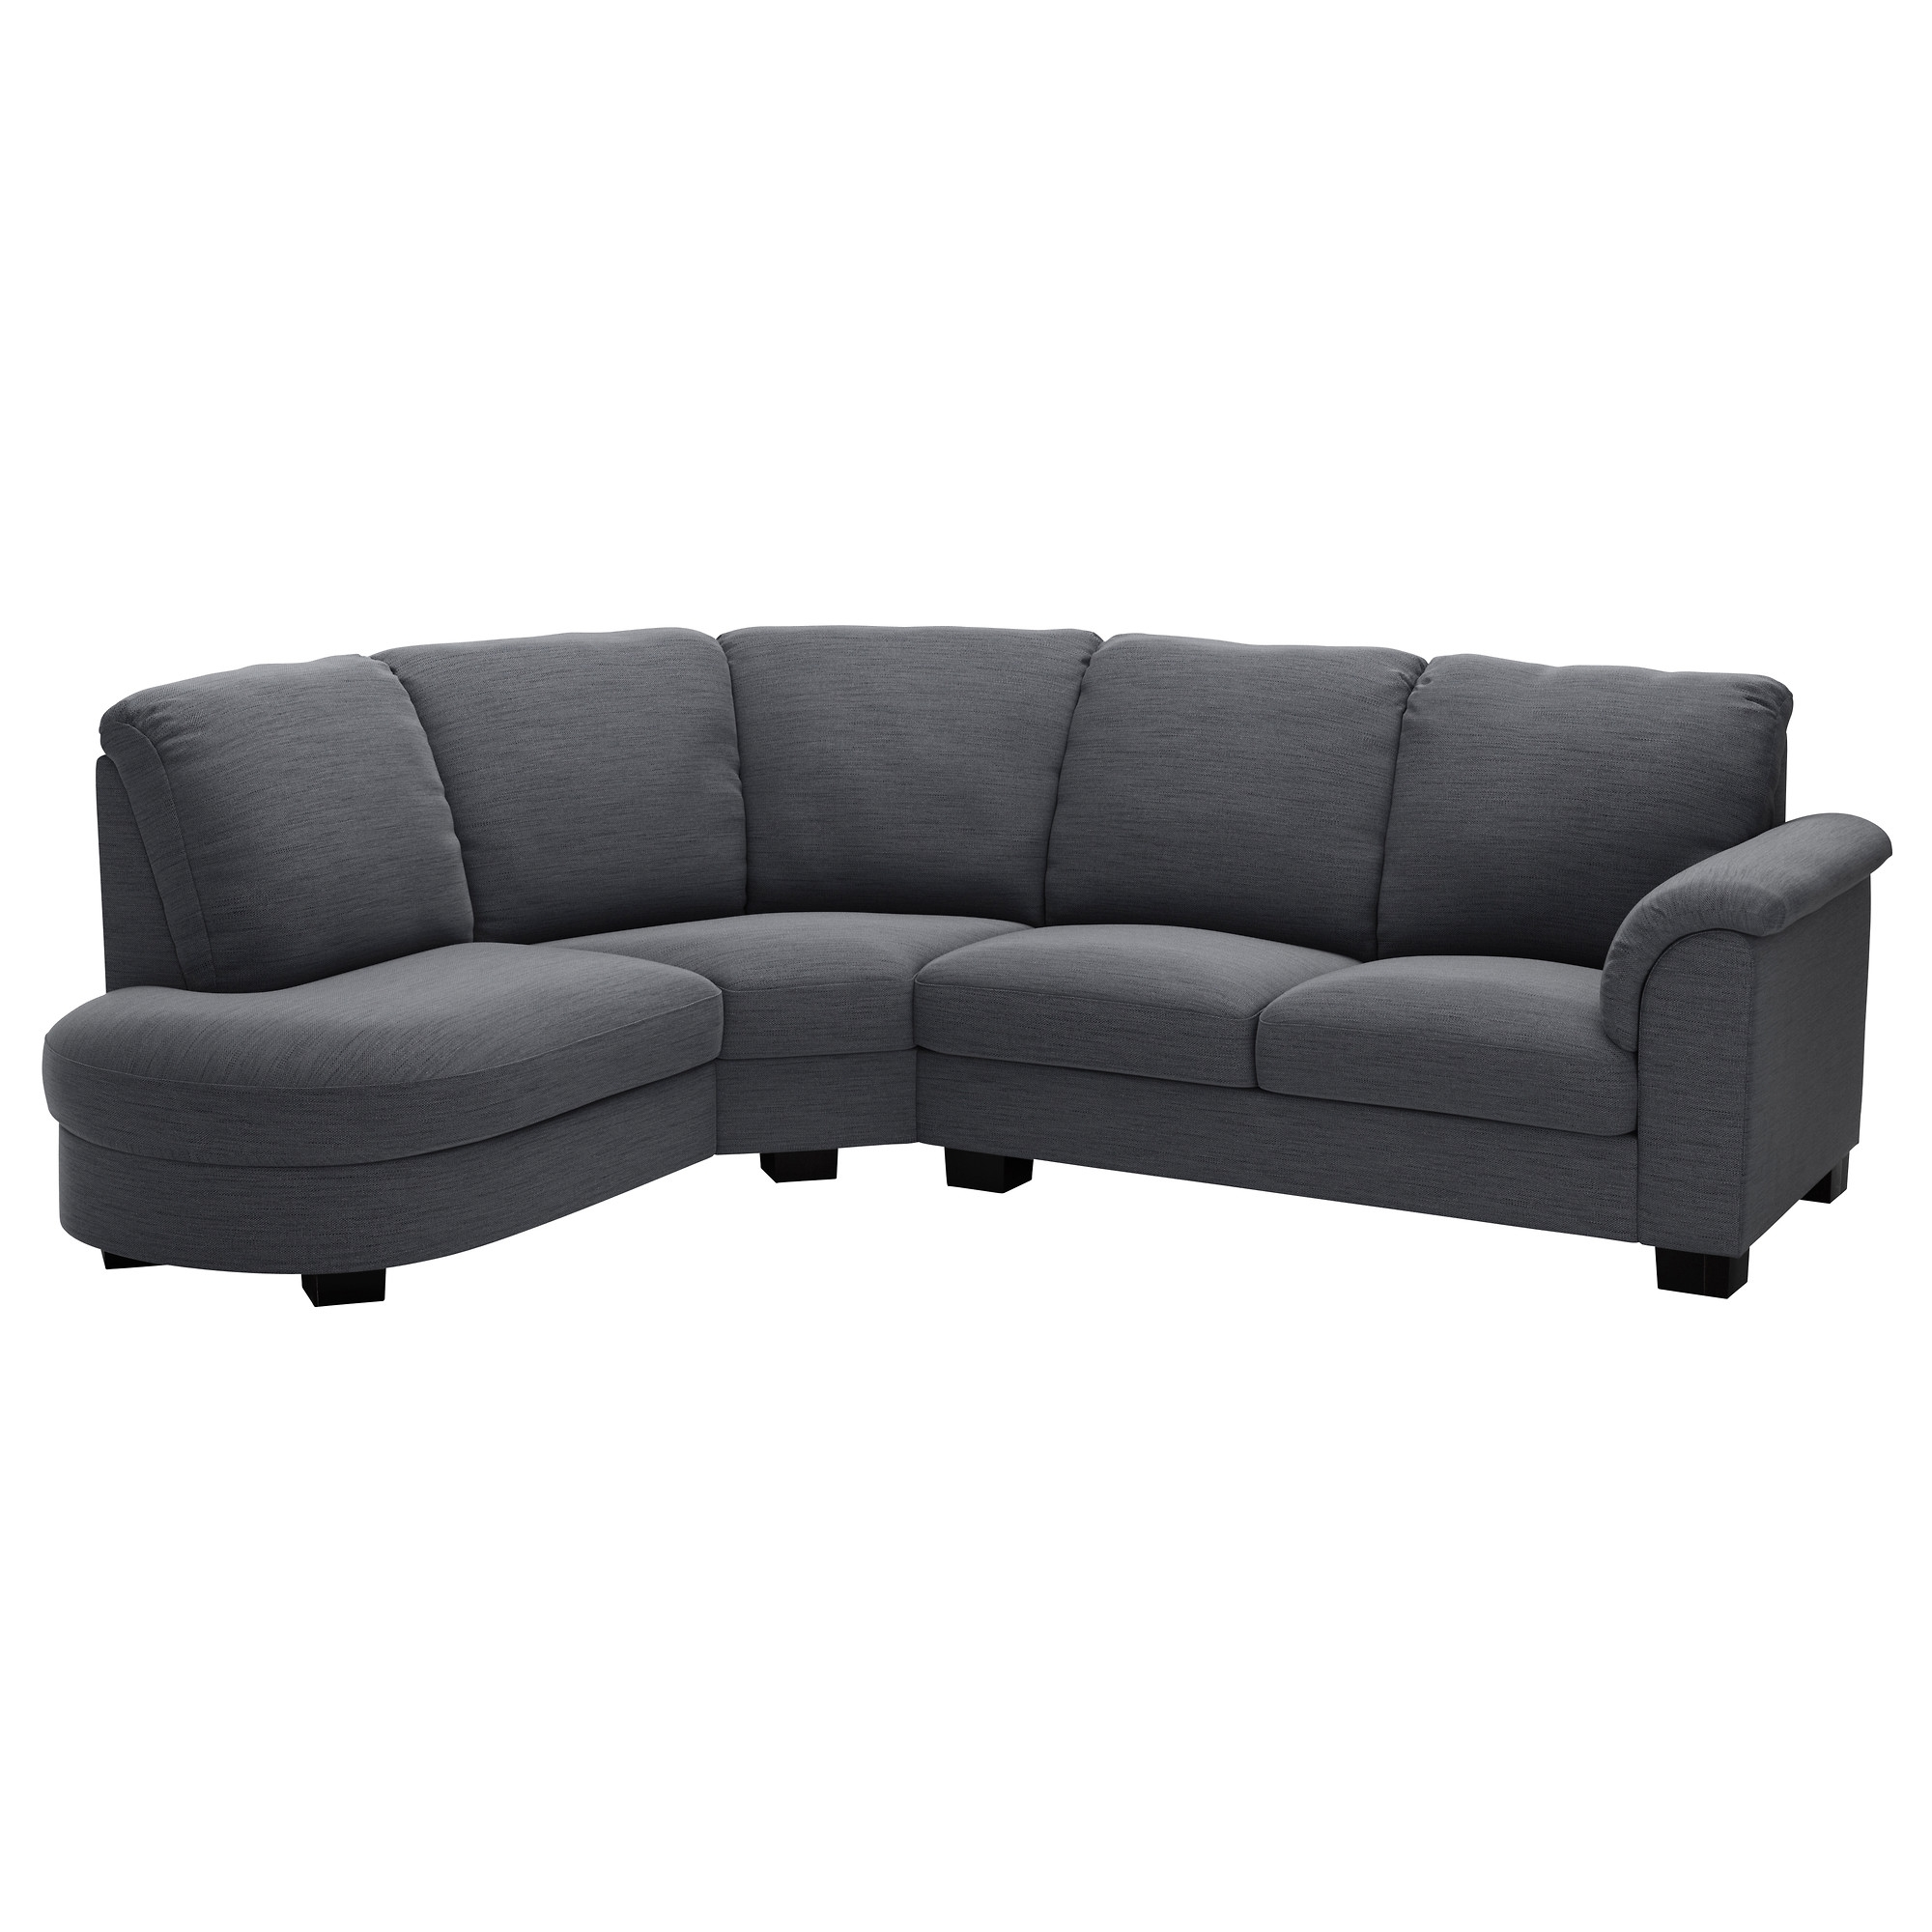 Current Fabric Corner Sofas For Tidafors Sectional, 3 Seat – Dansbo Medium Brown – Ikea (View 6 of 20)